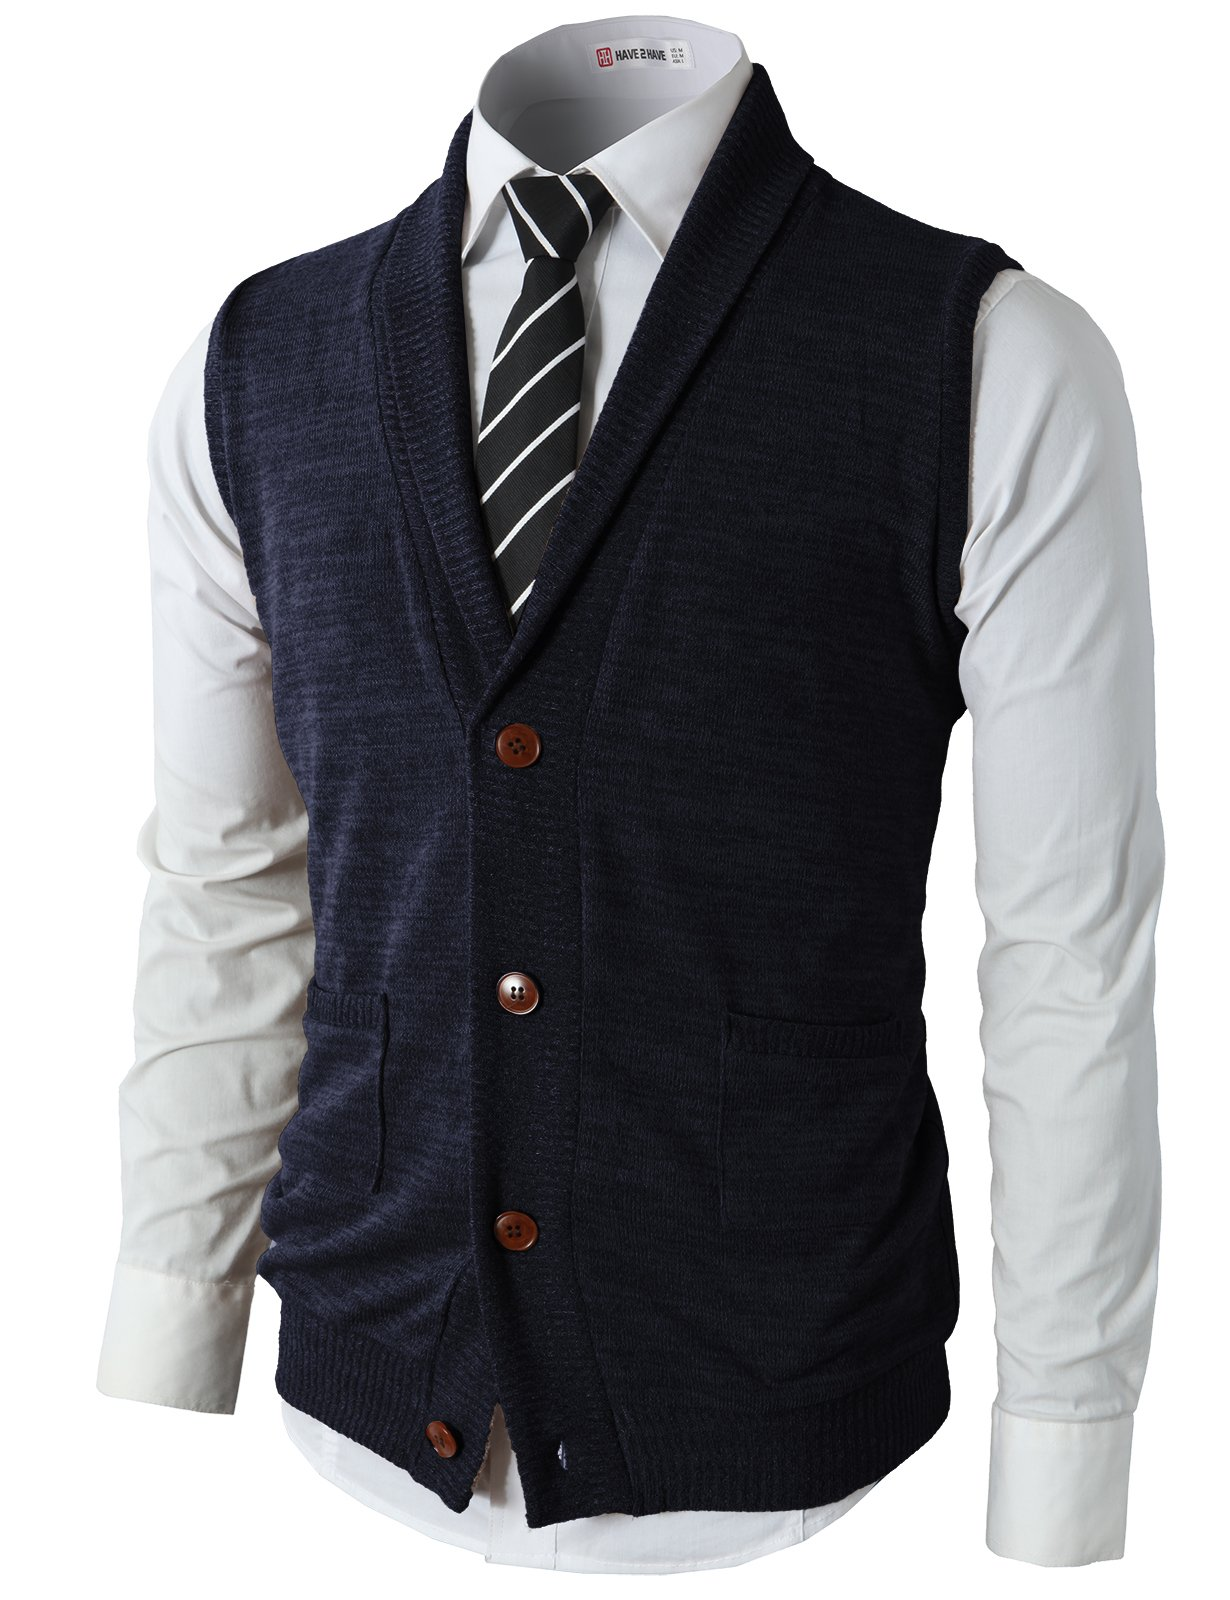 H2H Mens Casual Basic Shawl Collar Fine Knitted Slim Fit Vest Navy US L/Asia XL (CMOV034) by H2H (Image #1)